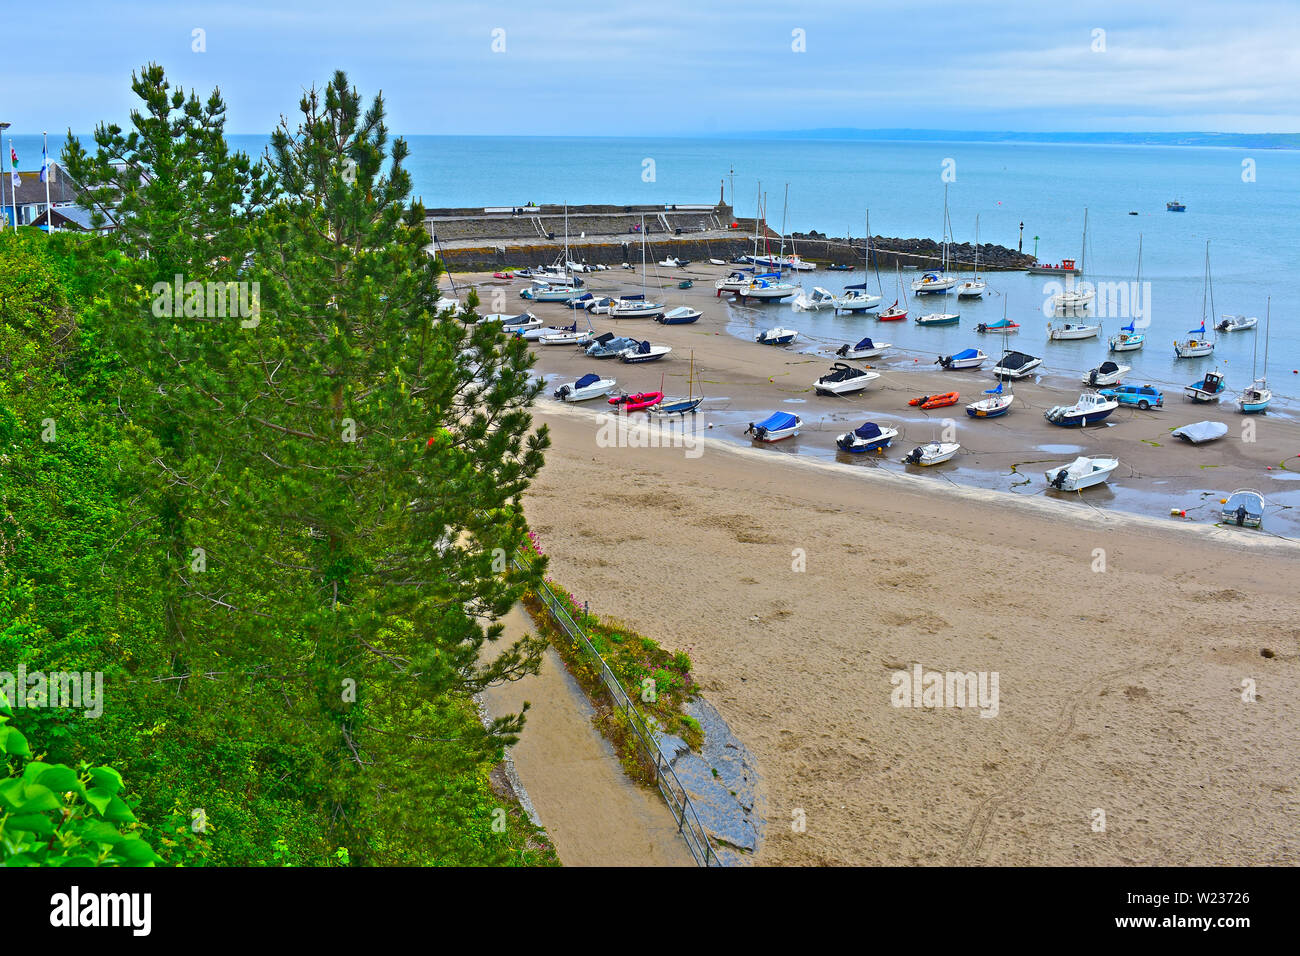 A view of the pretty little harbour at Newquay in West Wales, at low tide. Sandy beach and stone breakwater. Assorted leisure craft & fishing boats. - Stock Image